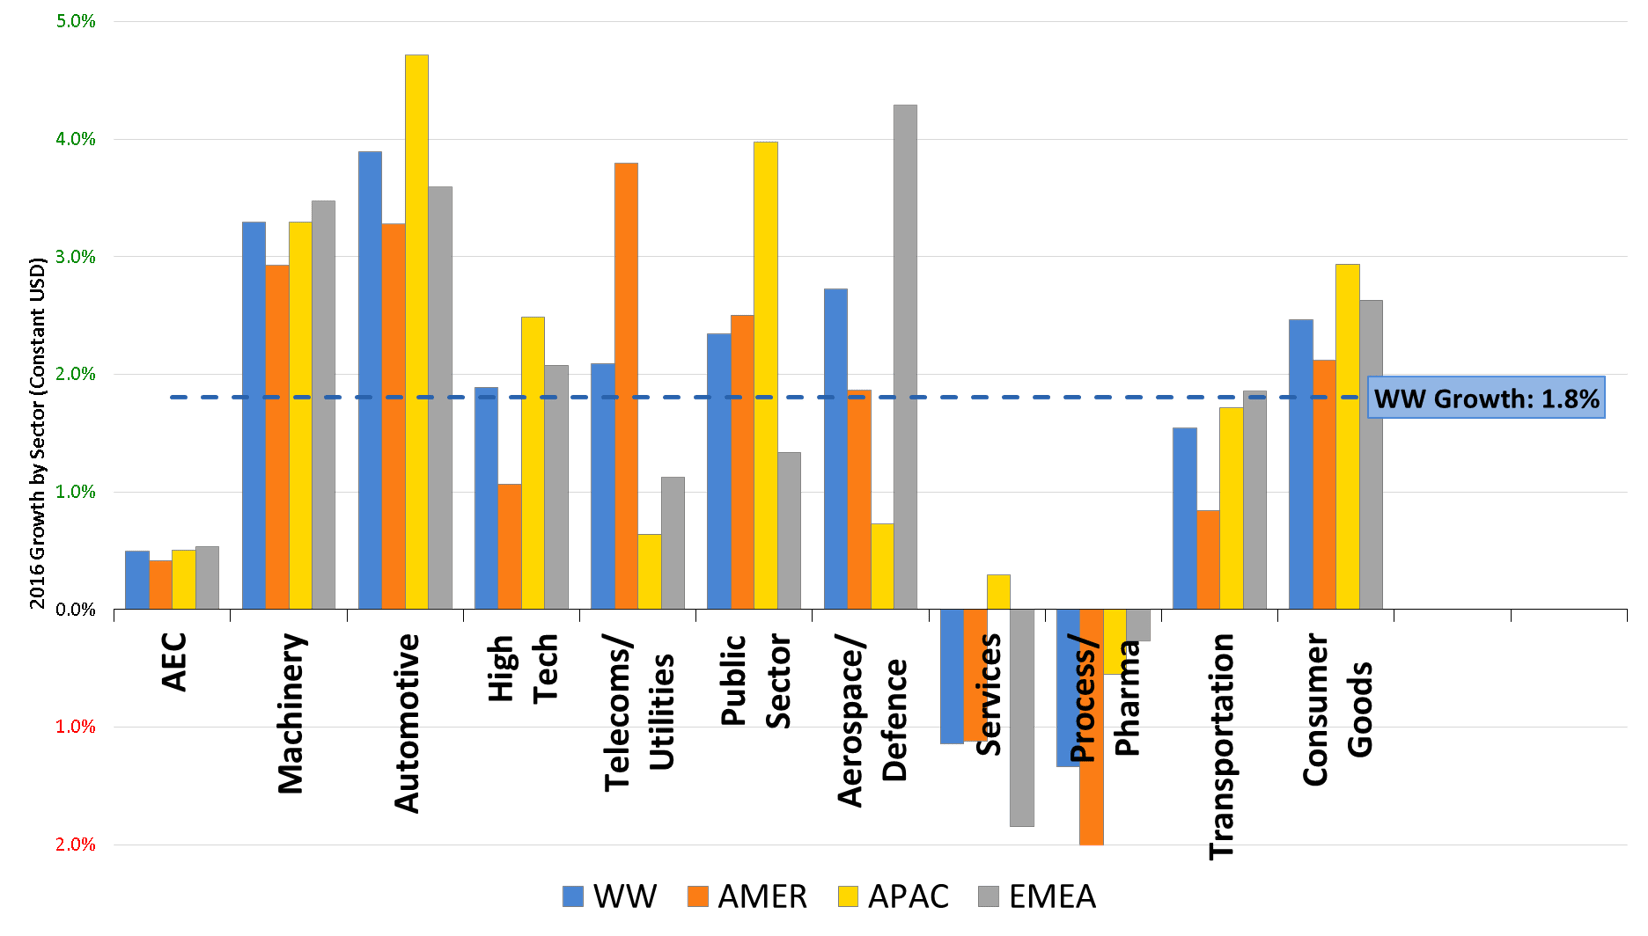 Engineering software spend by 11 industries and 3 regions